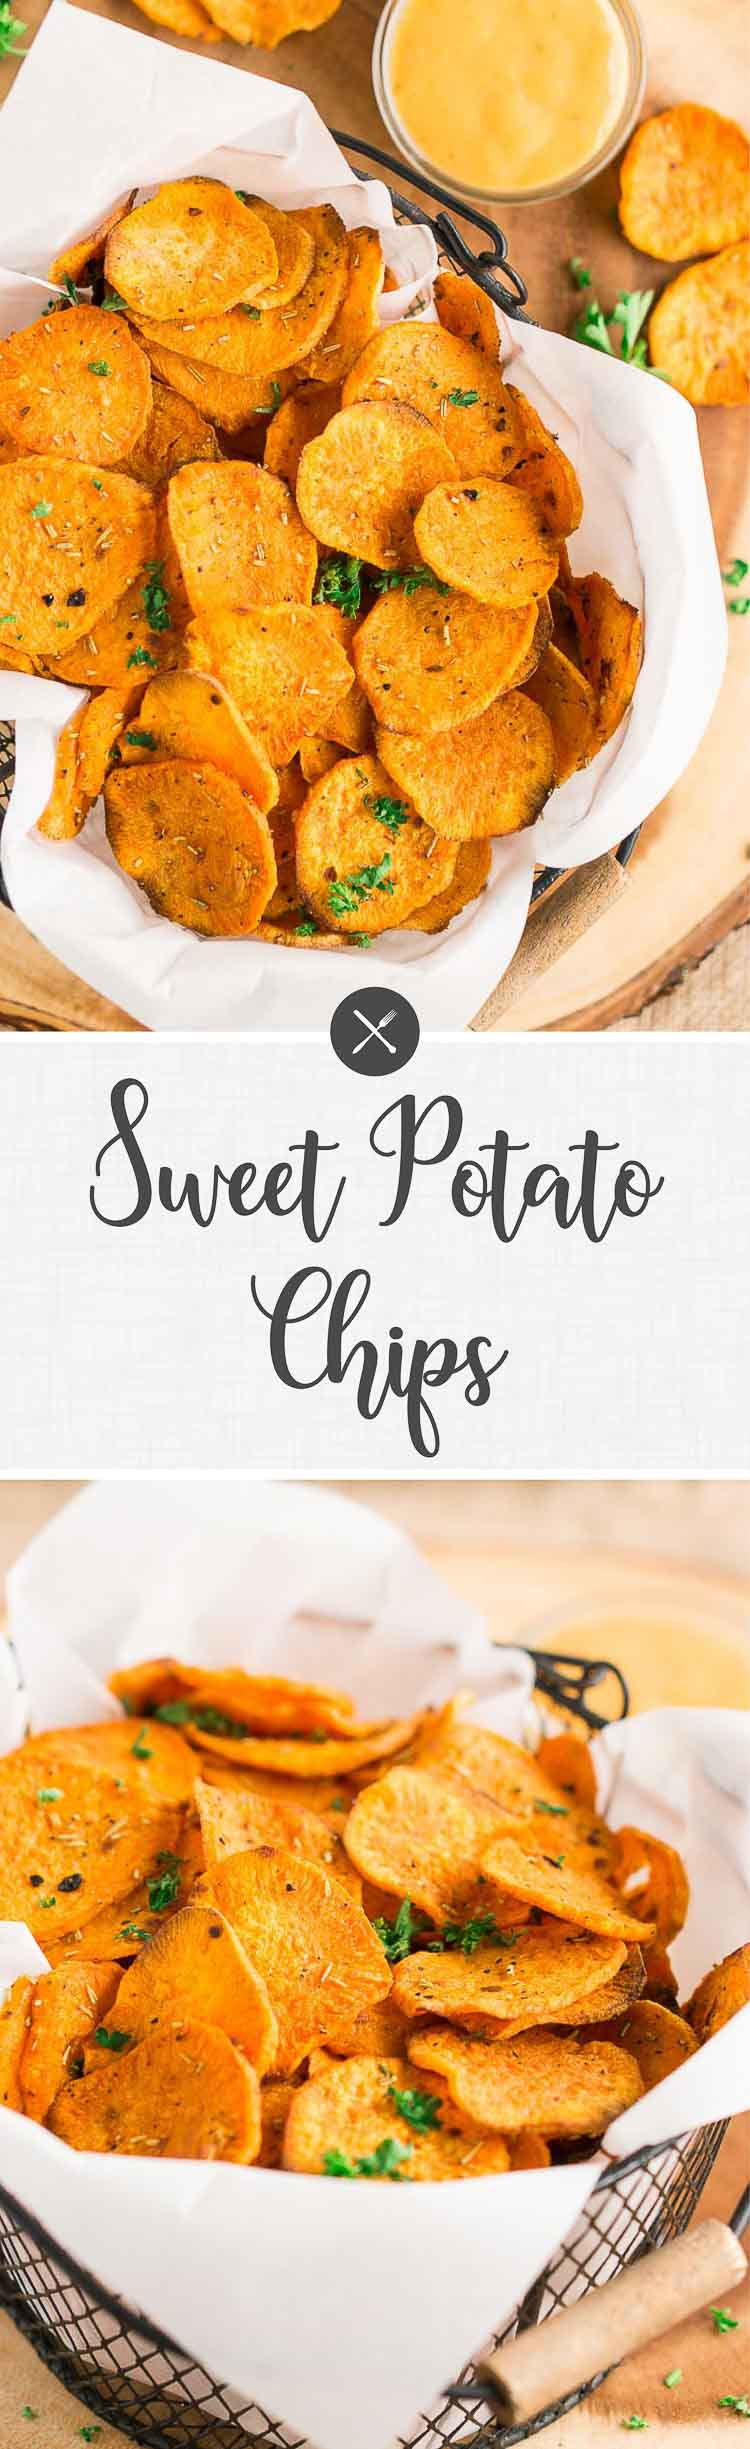 how to make oven baked sweet potato chips